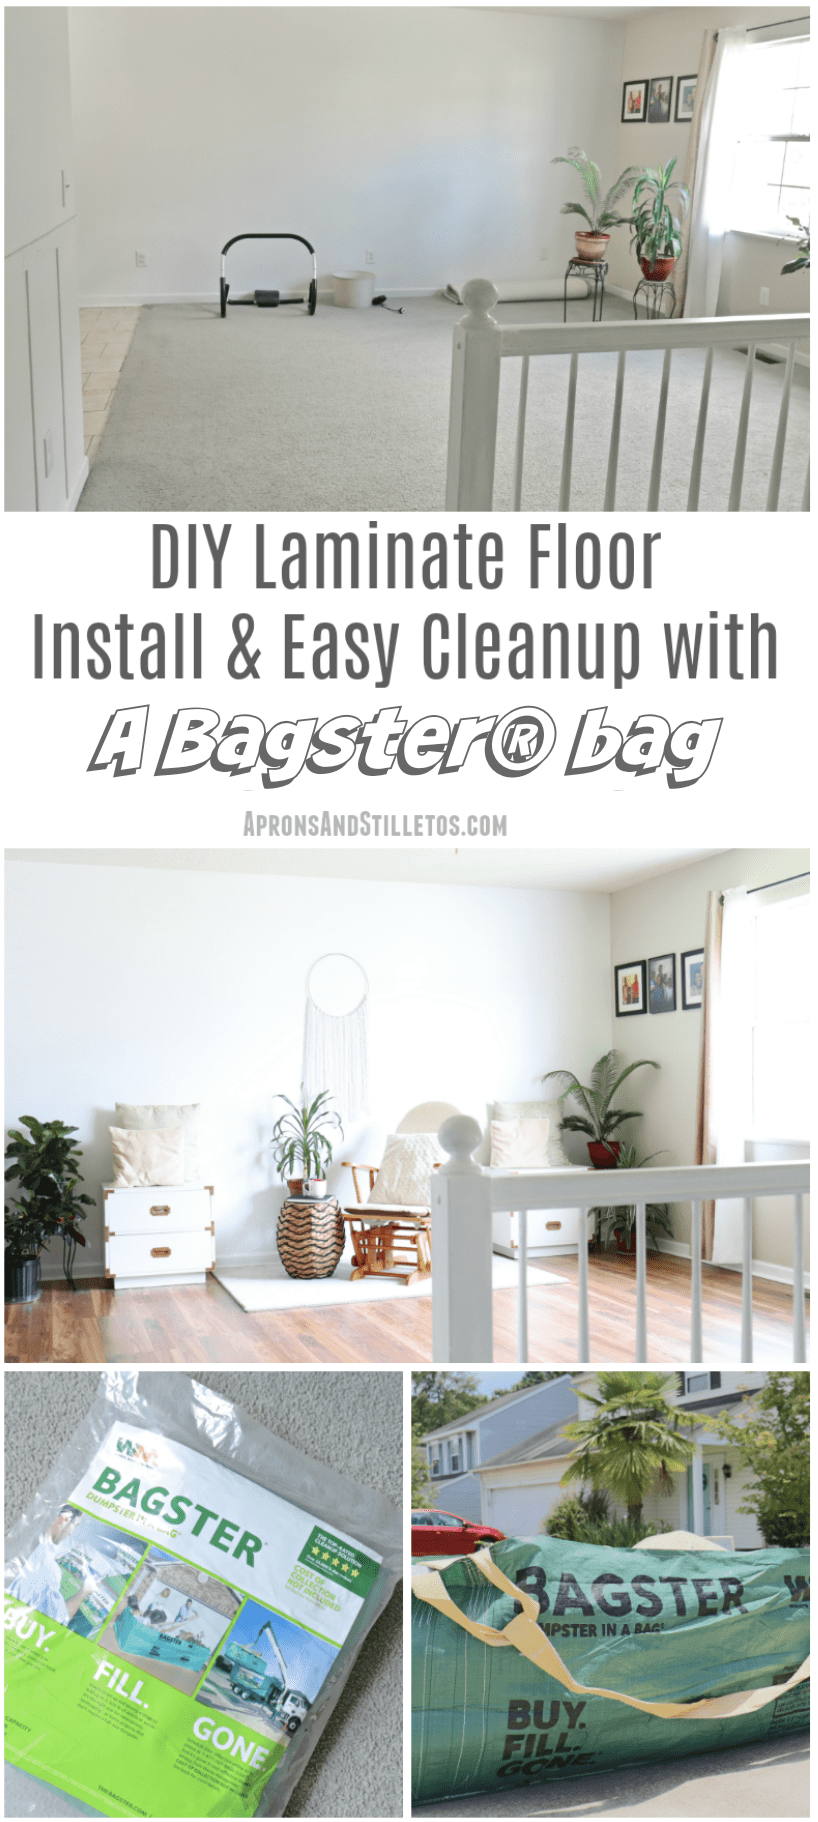 DIY Laminate Floor Install & Easy Cleanup with Bagster®bag